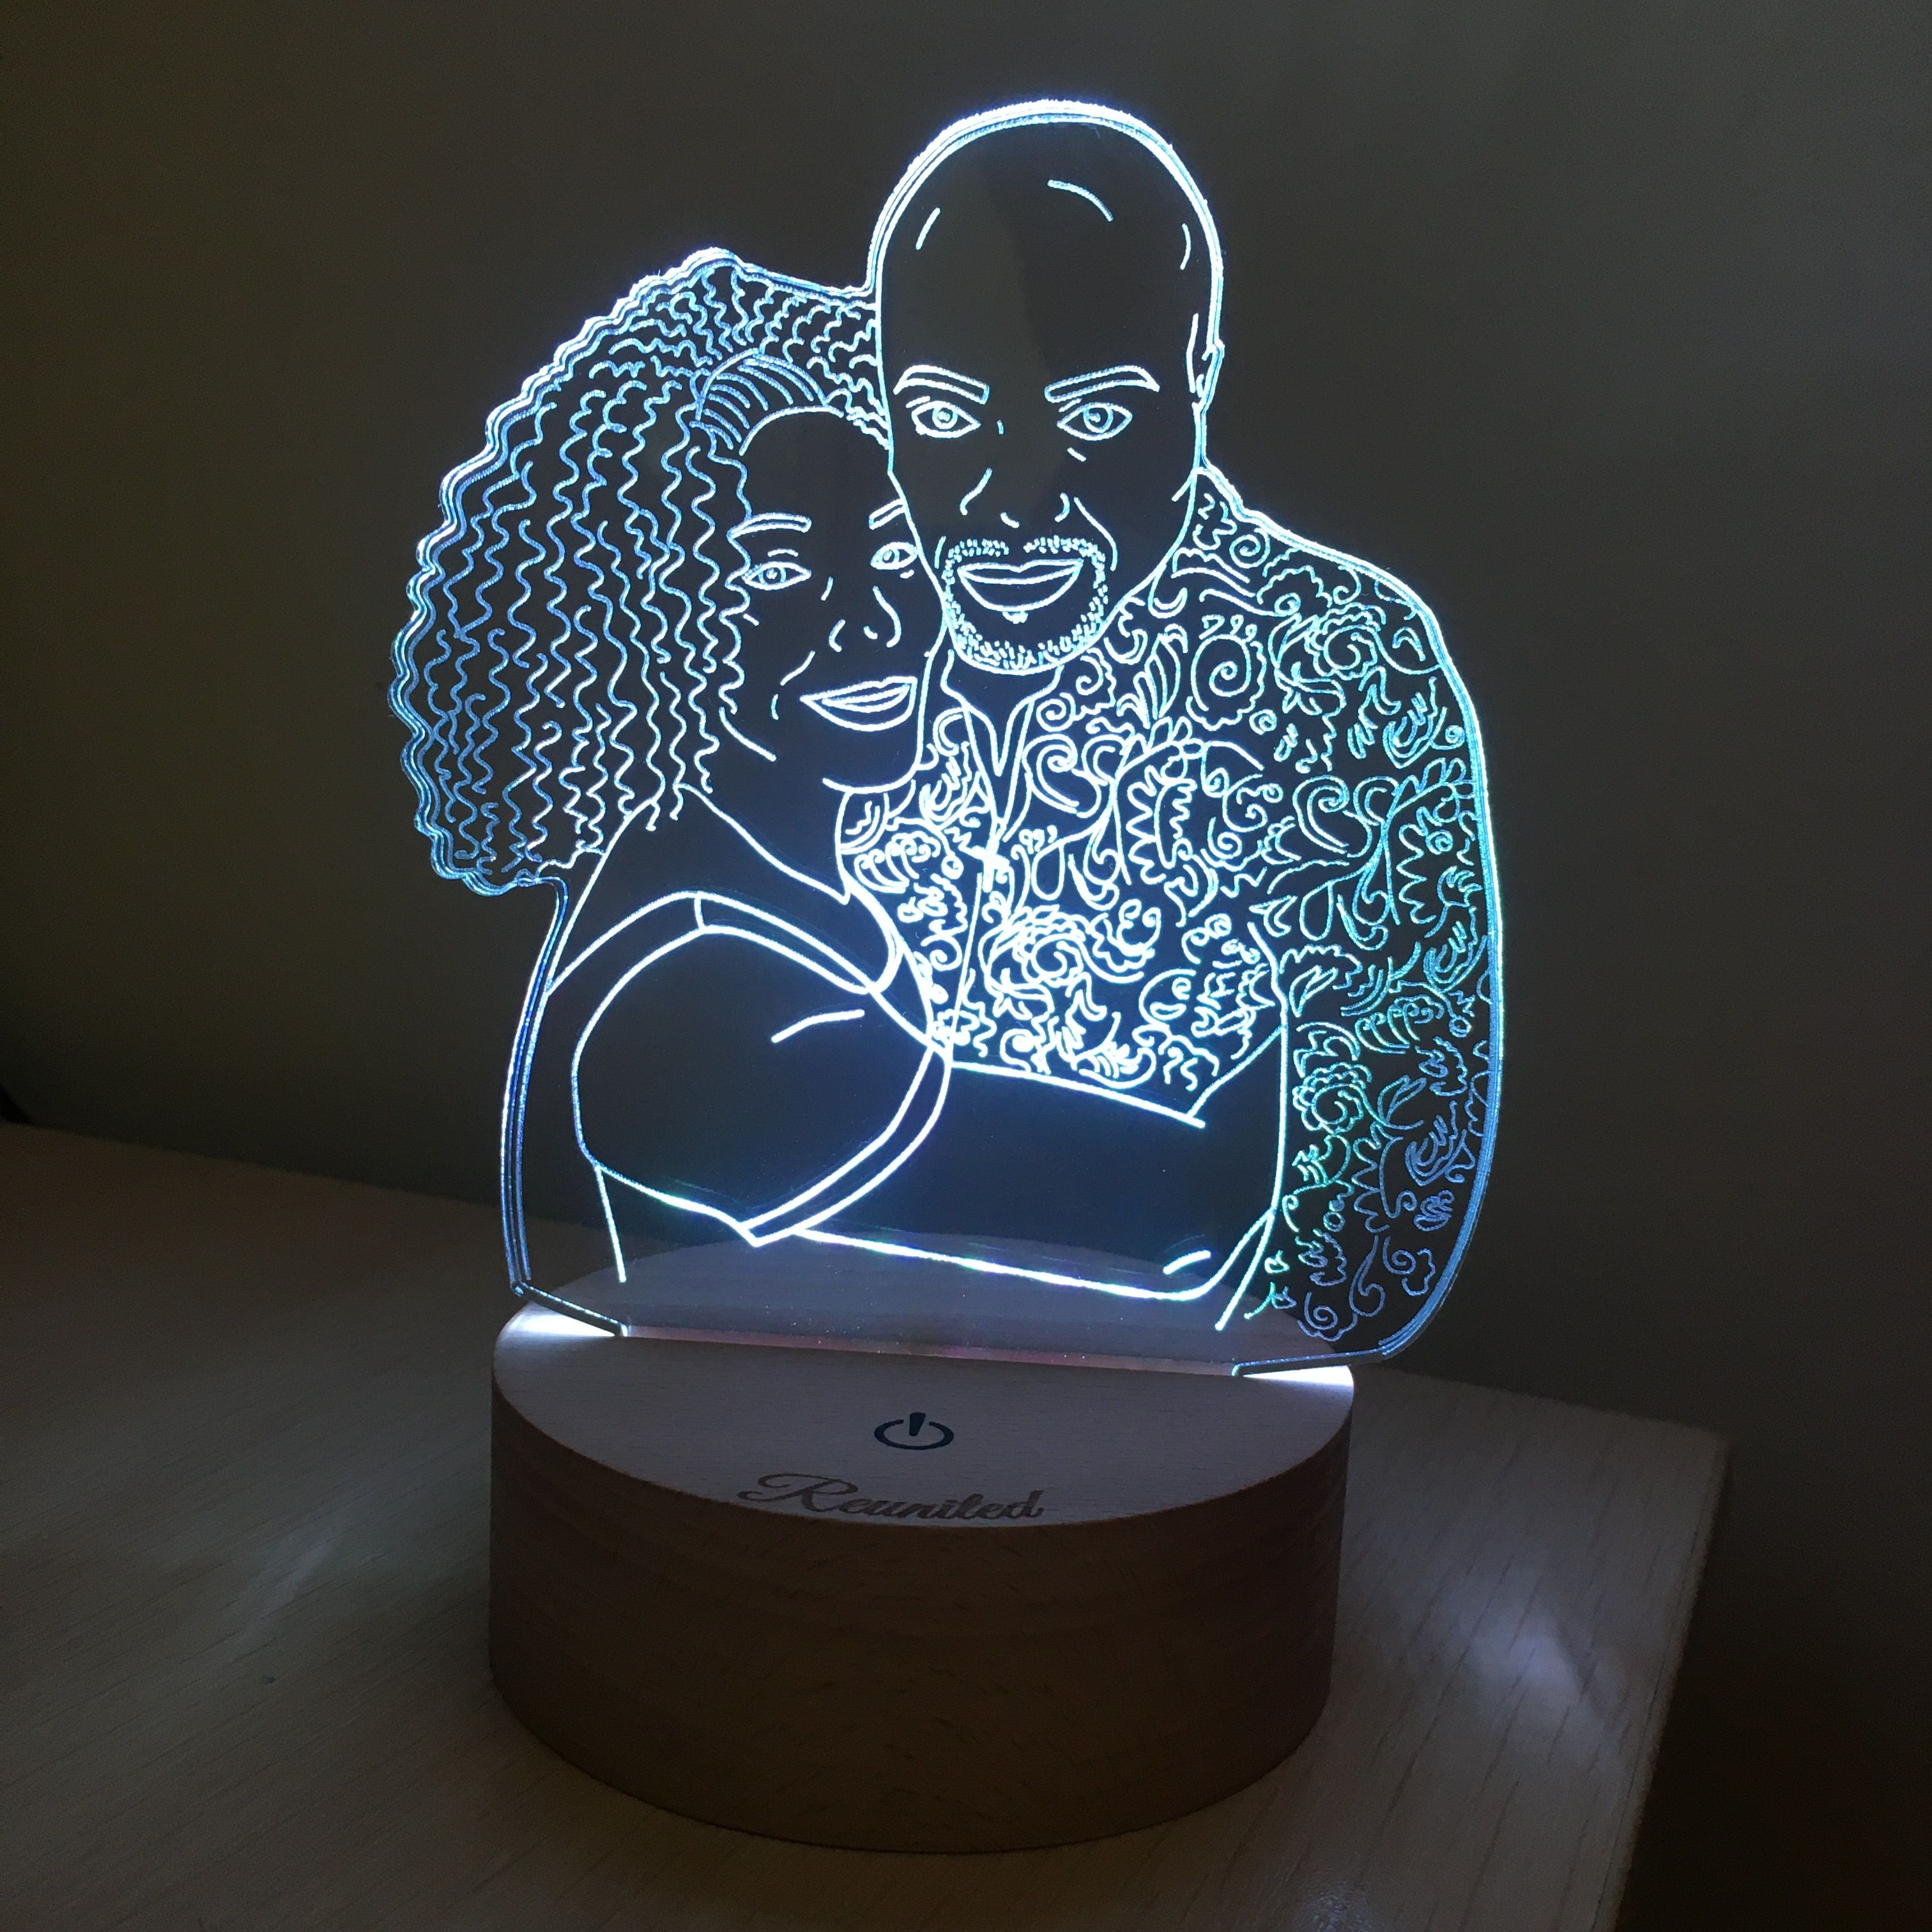 Custom Led Lamp Drawing From Photo Couple Light Nightlight Etsy In 2020 Personalized Photo Gifts 3d Led Lamp Custom Photo